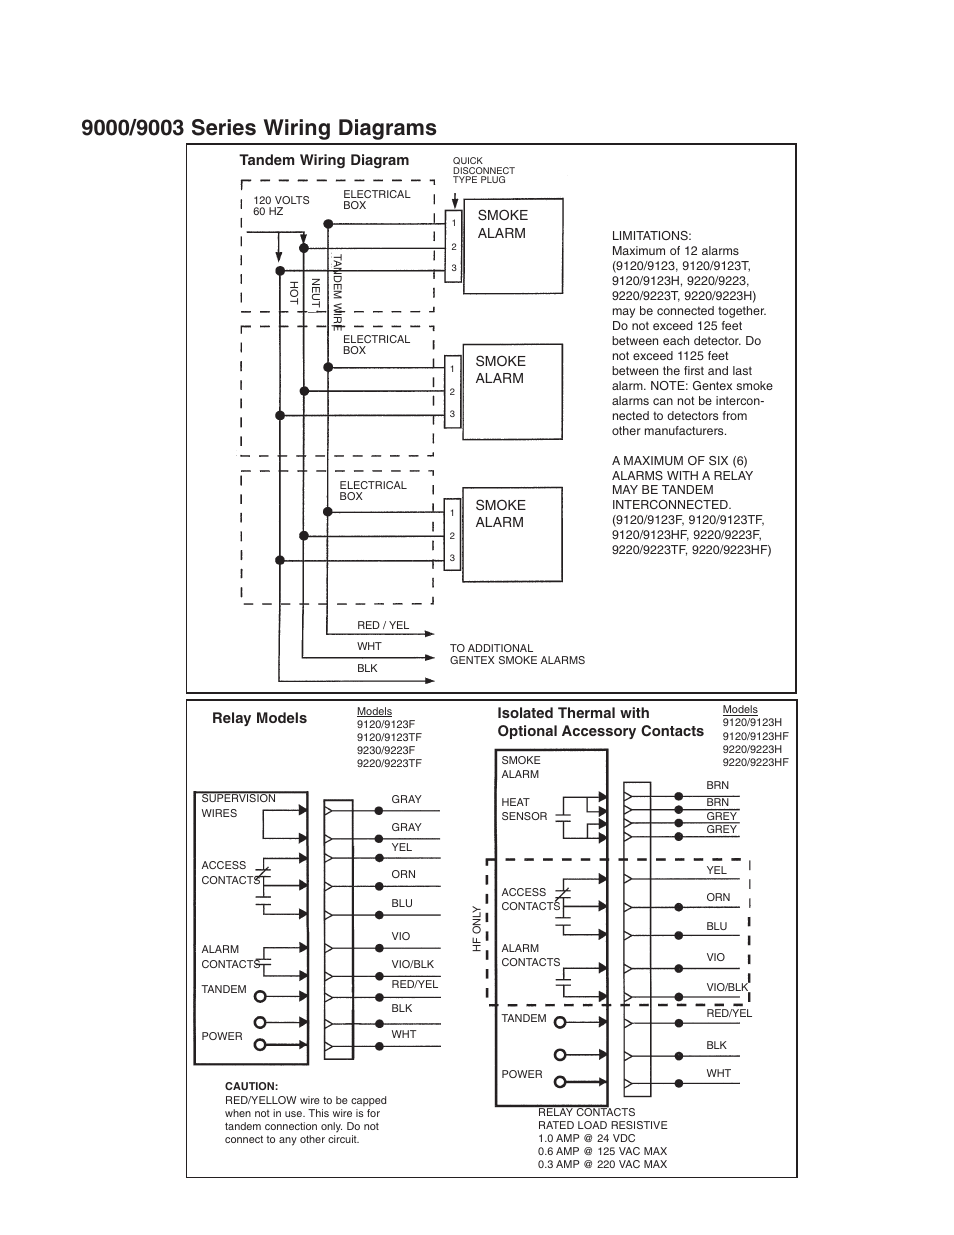 gentex fire alarm wiring diagram